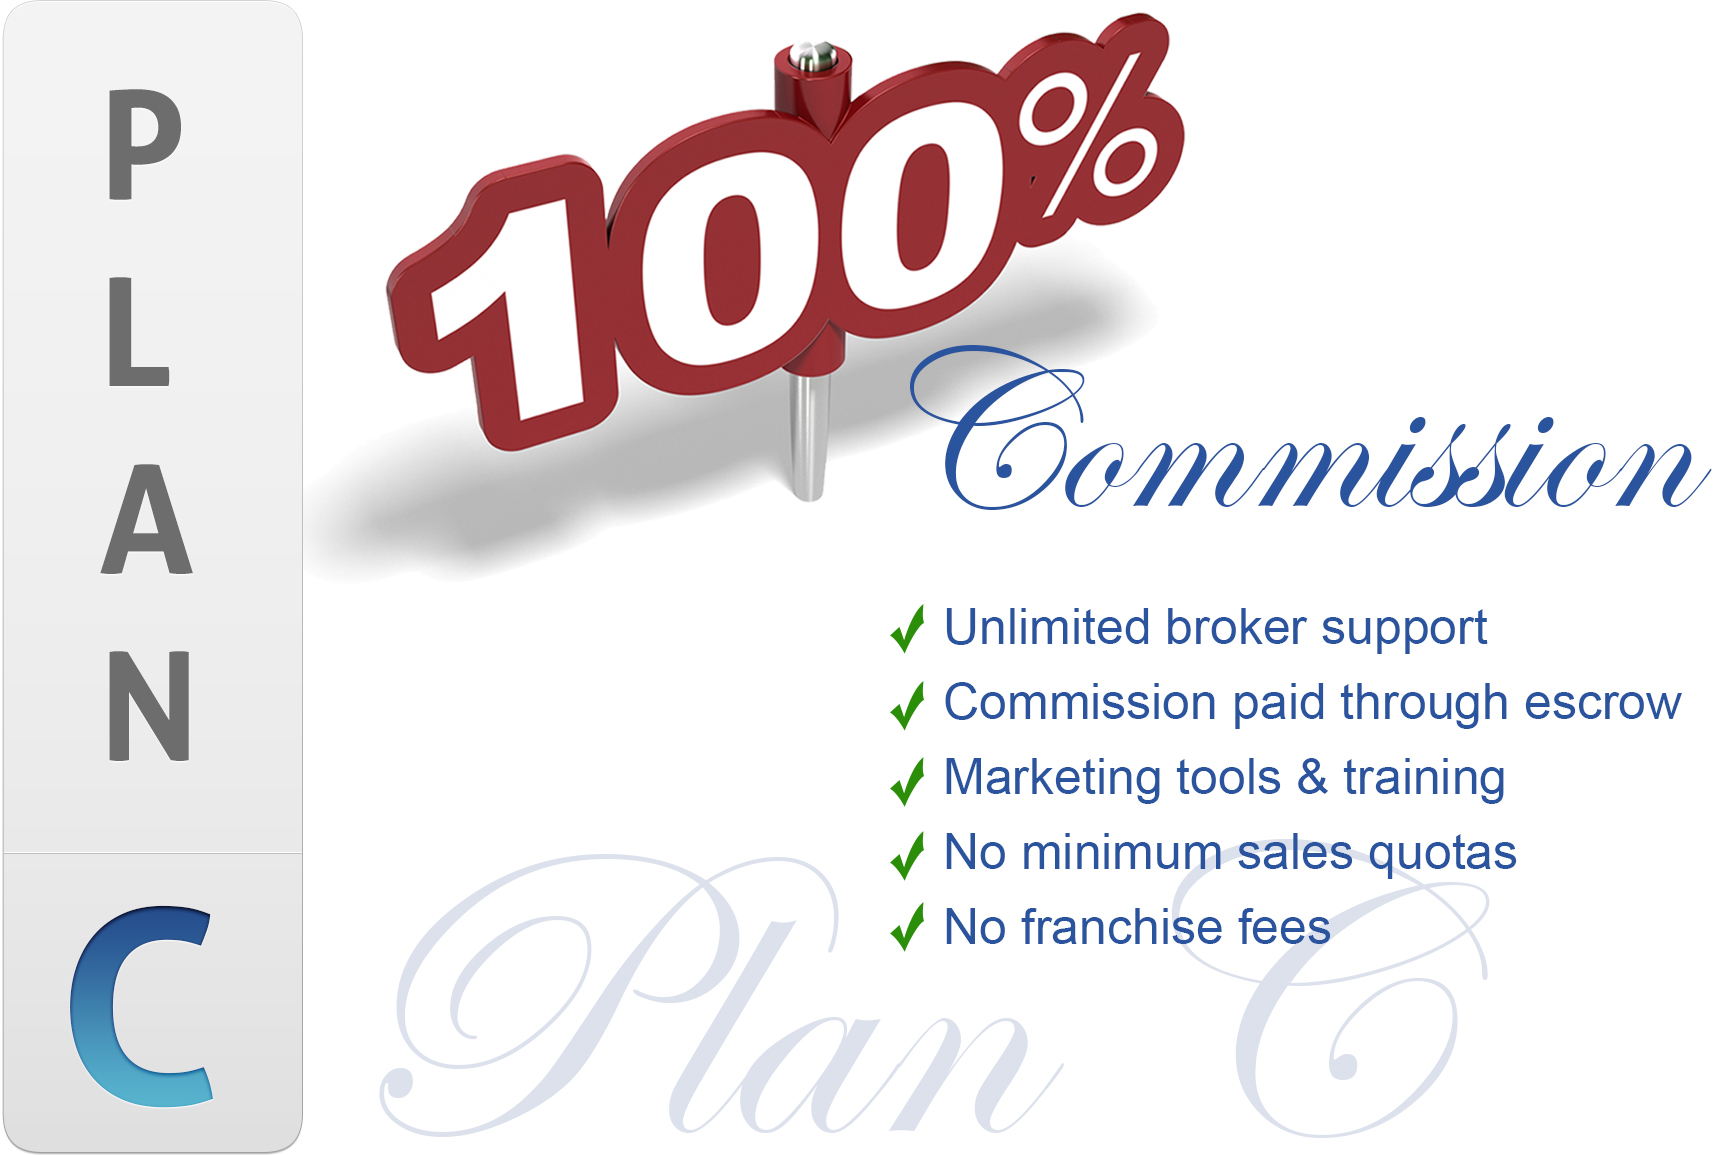 Sunset Ridge, CA Monthly Fee 100% Commission Program